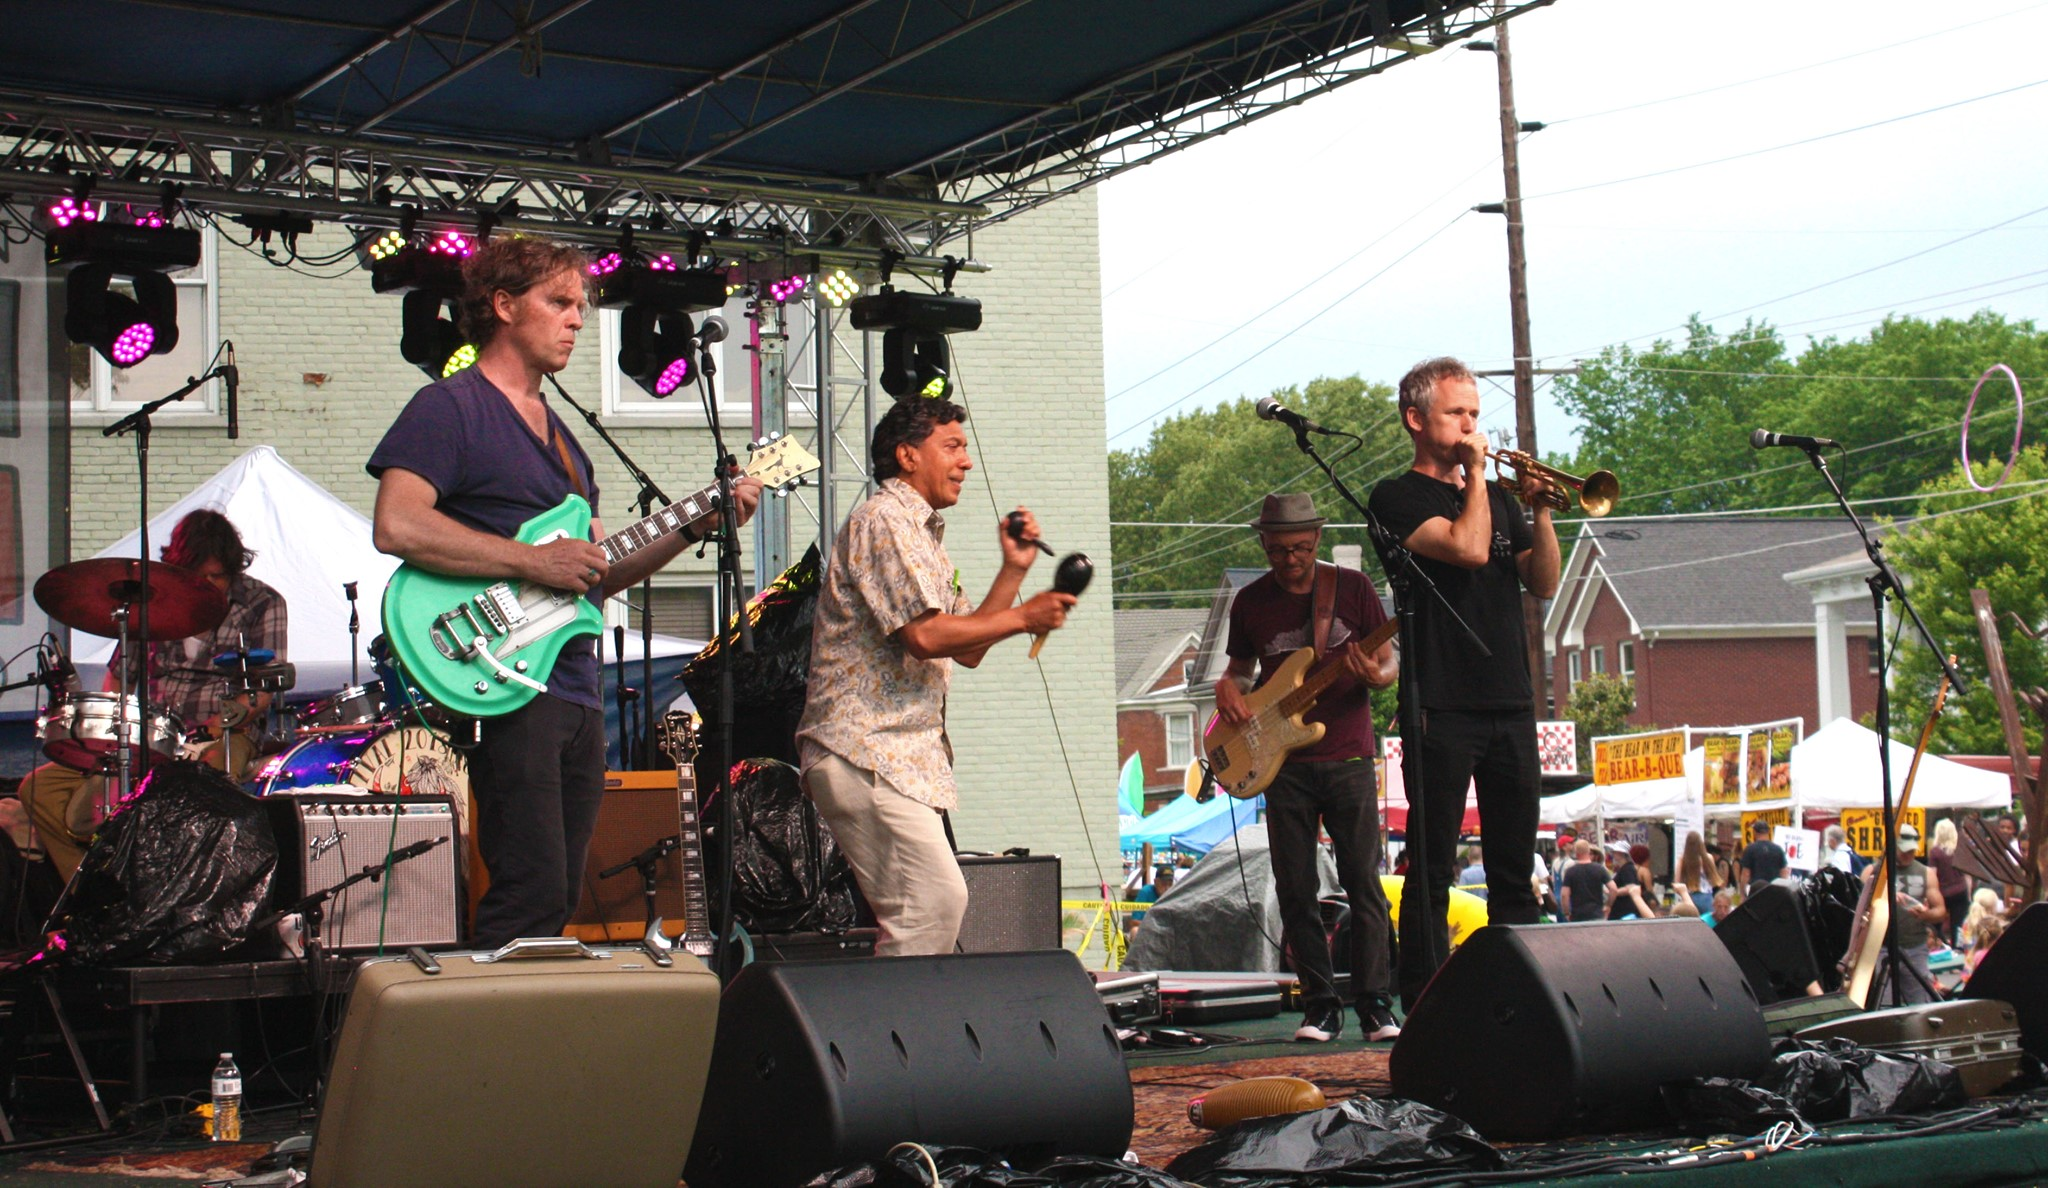 Lower Town Arts & Music Festival (Paducah, KY)